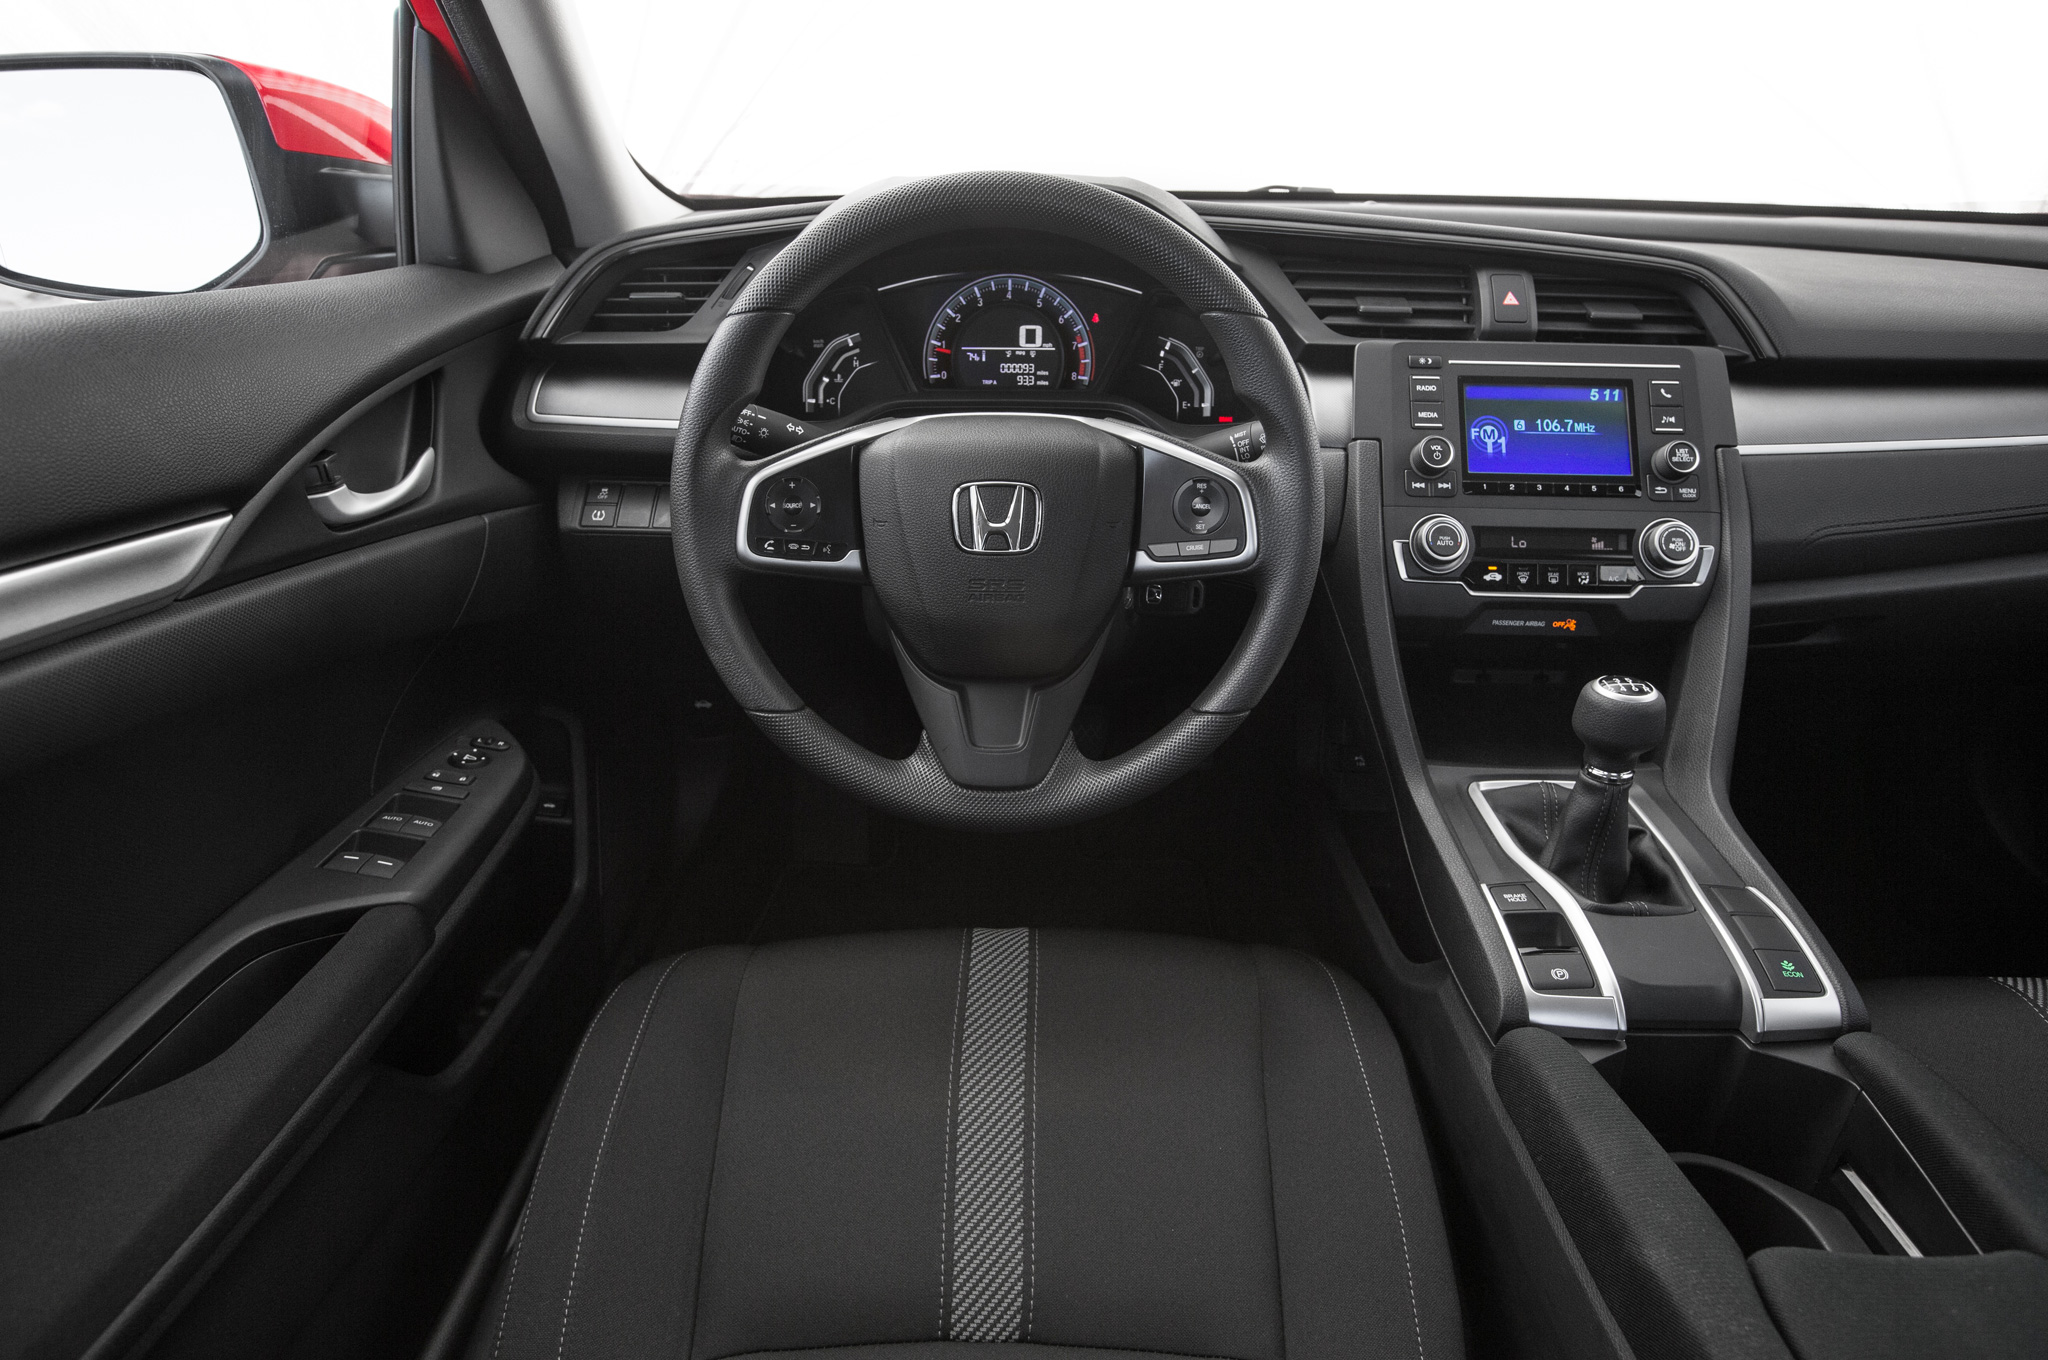 honda civic 2016 price in pakistan pictures reviews. Black Bedroom Furniture Sets. Home Design Ideas